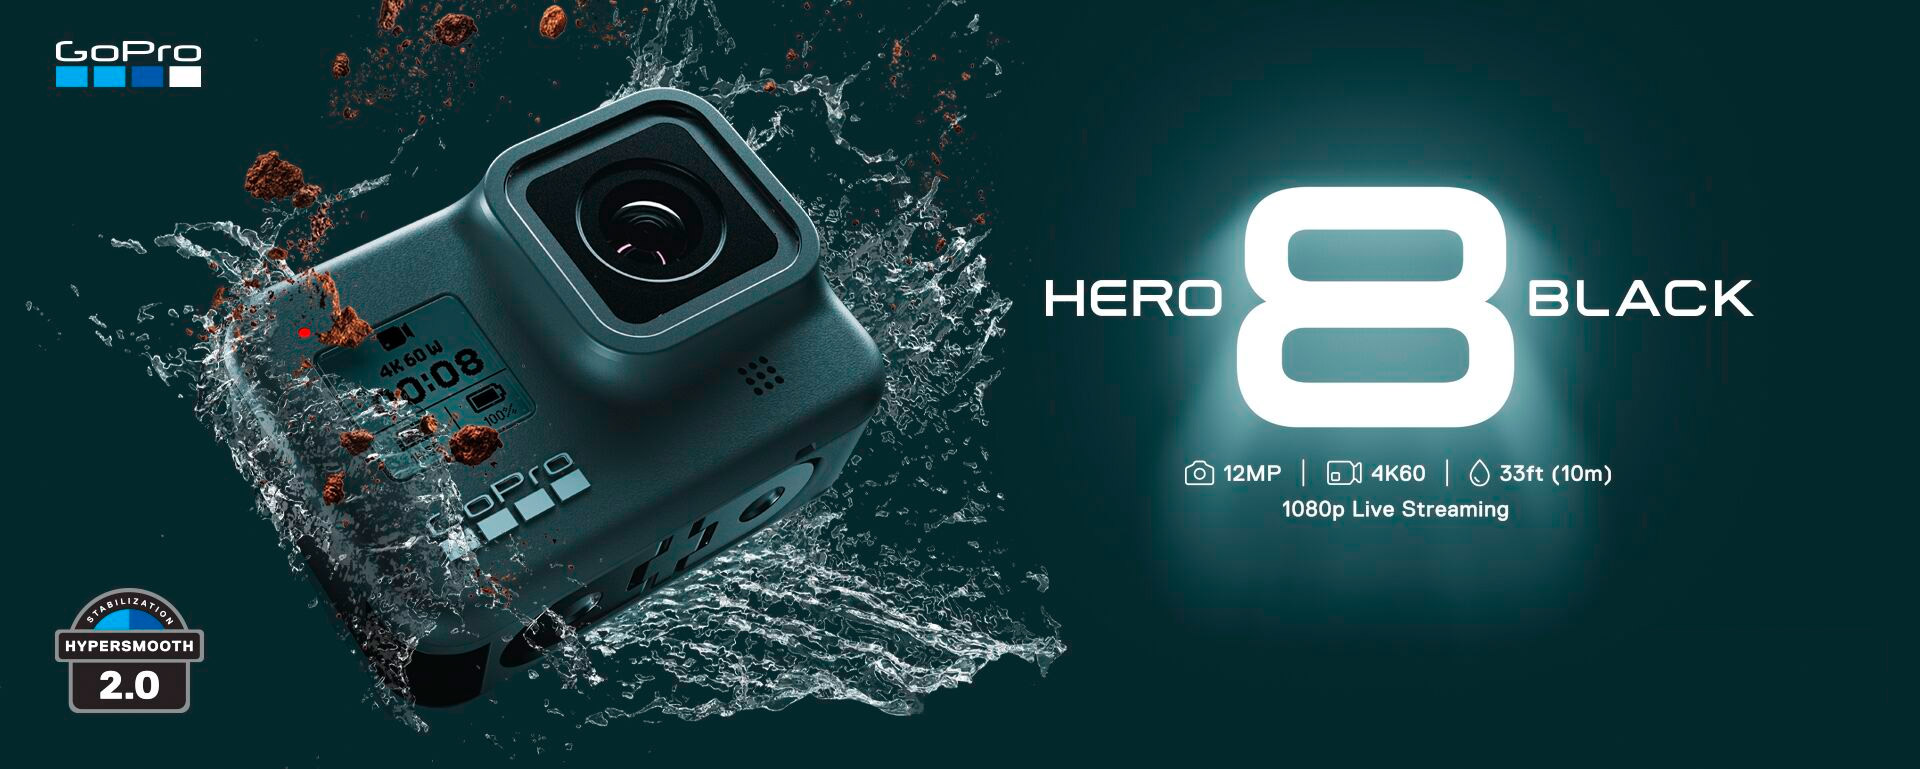 GoPro HERO8 Black Now Available